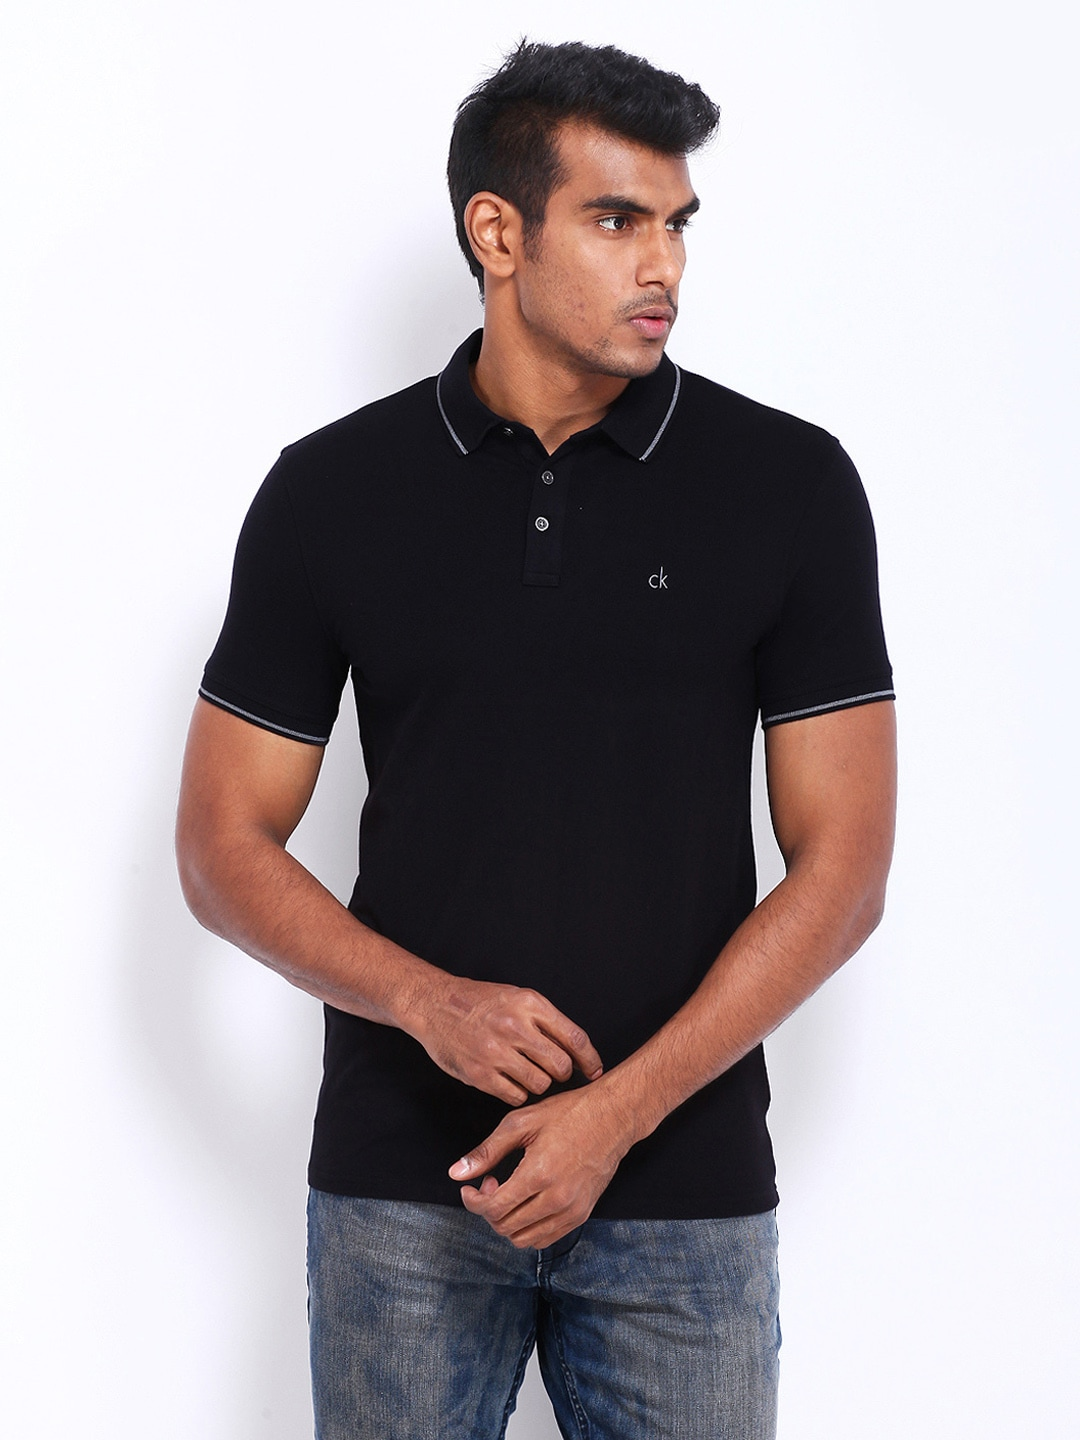 Calvin Klein Men's Shirts Store: Buy Calvin Klein Men's Shirts Online in India at gusajigadexe.cf